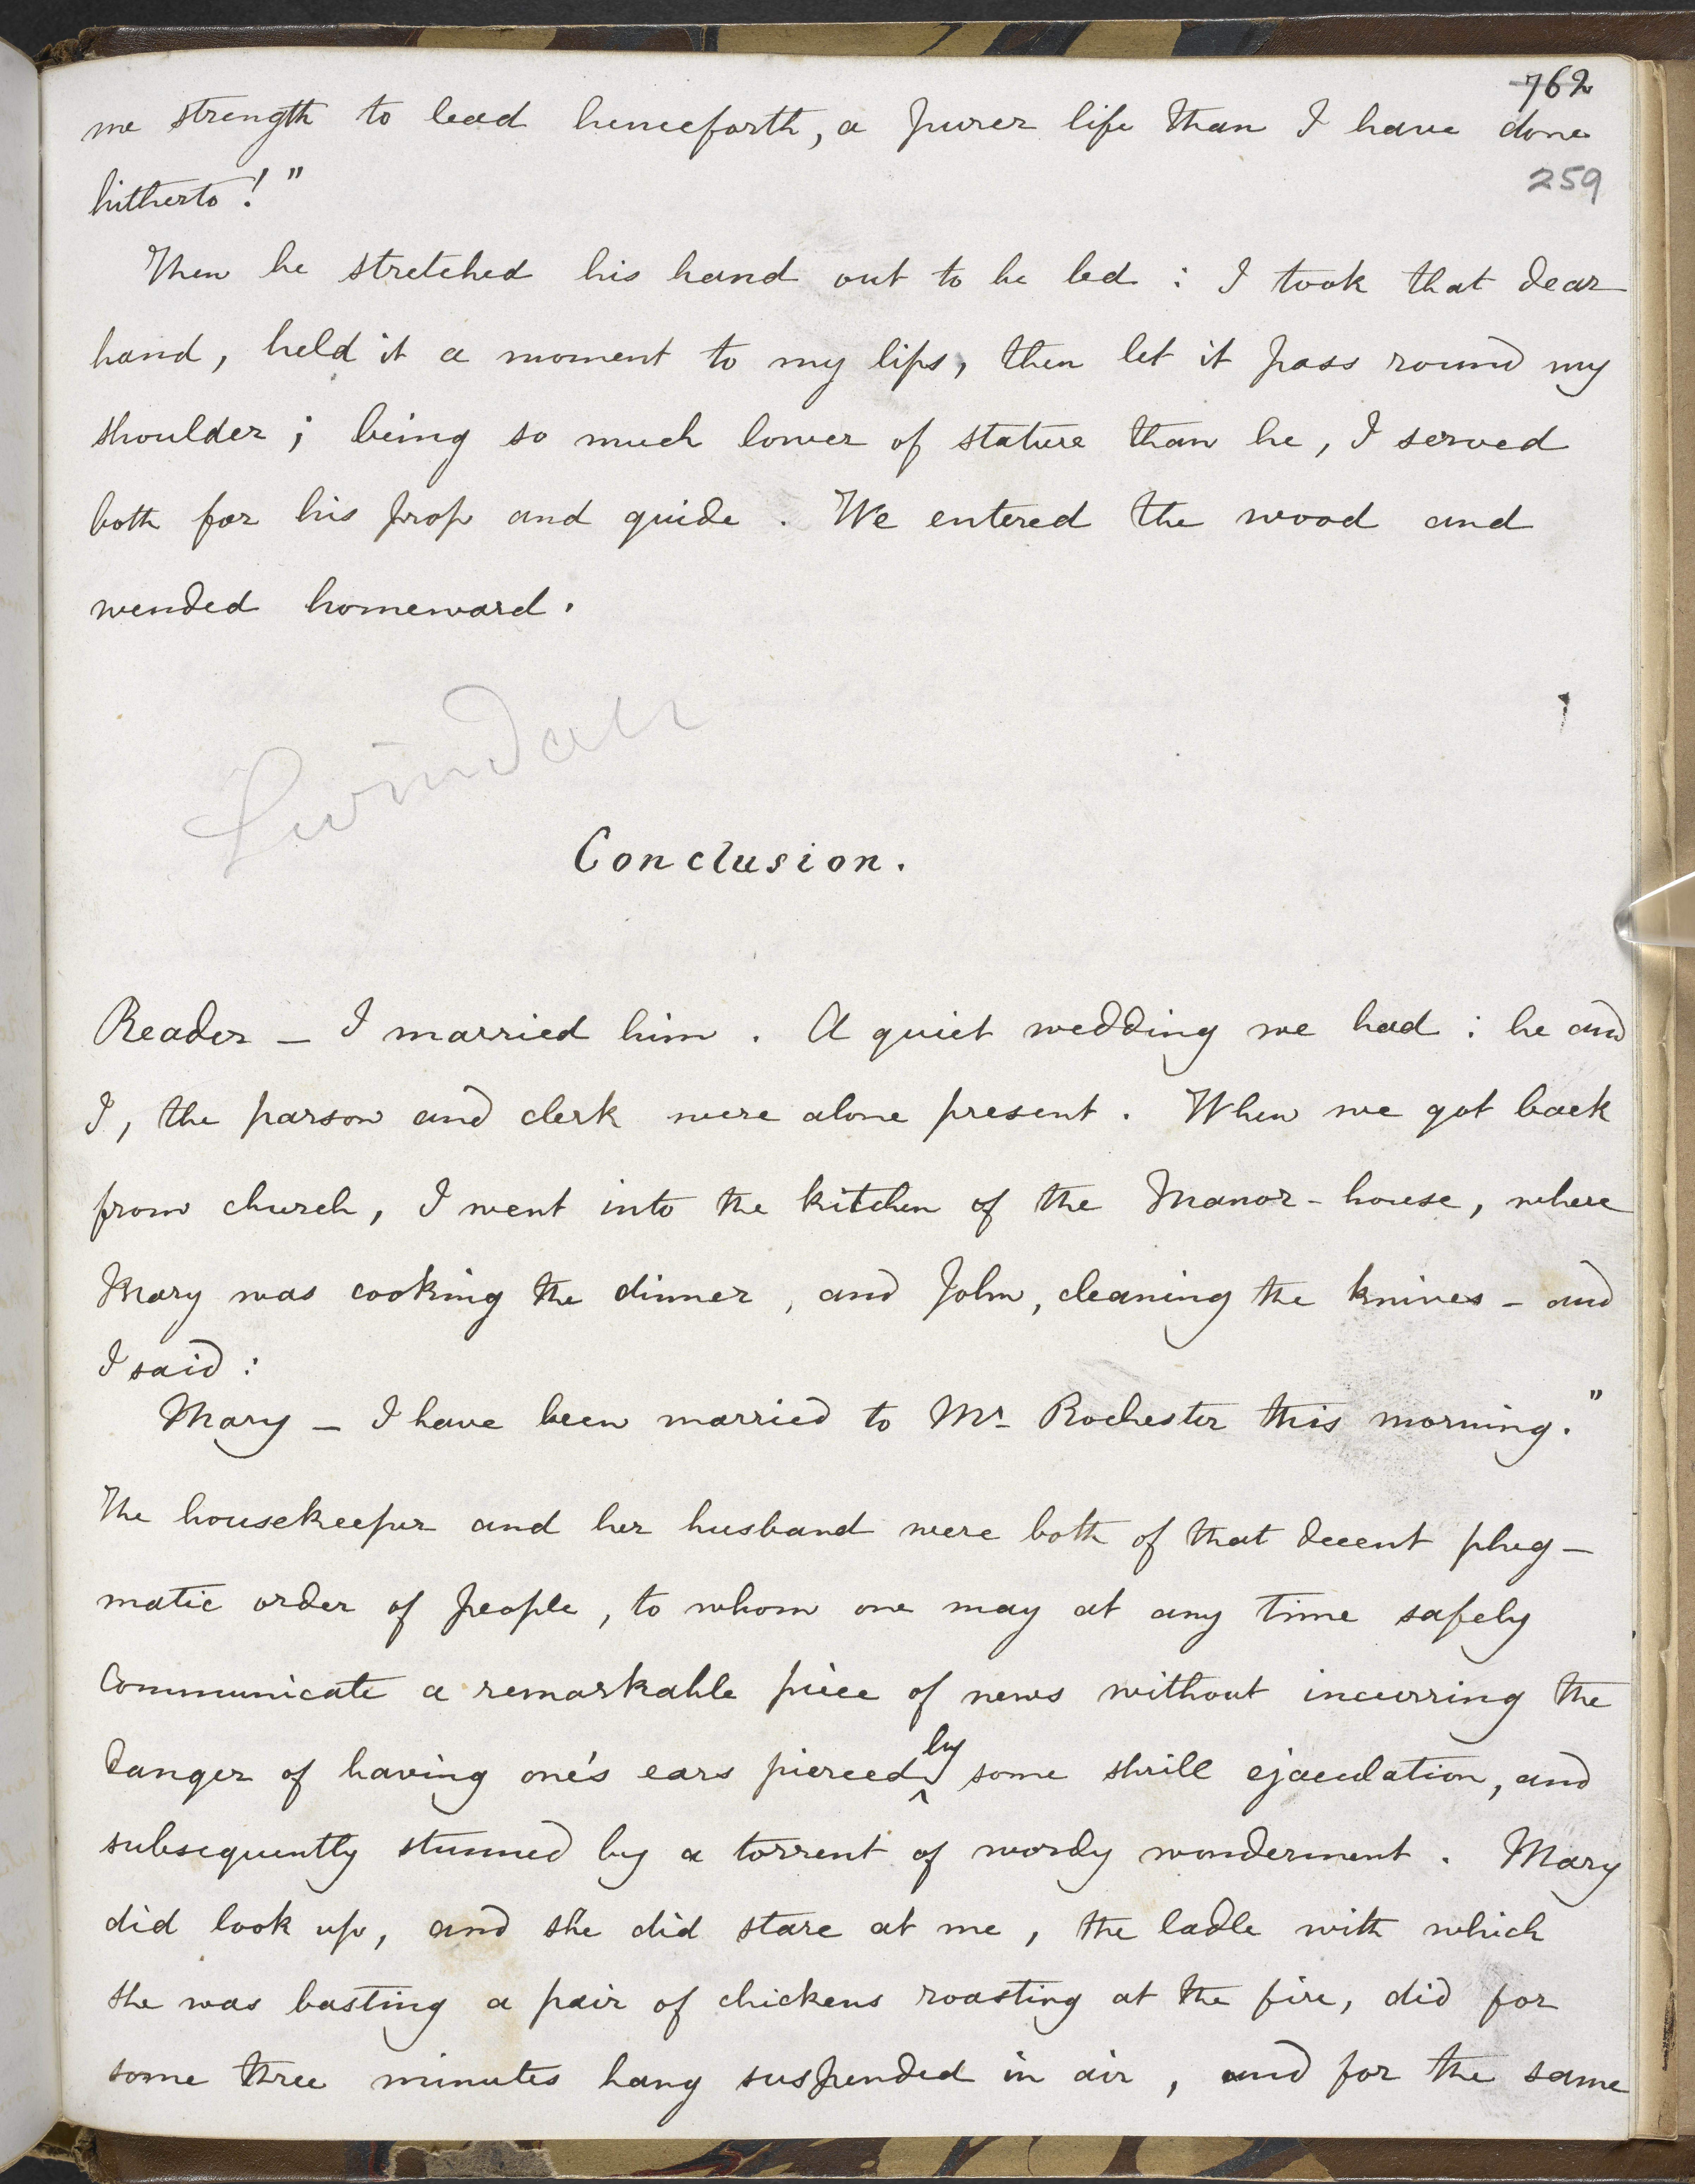 Conclusion of manuscript fair copy of Jane Eyre, volume III by Charlotte Brontë , 1847, British Library Add MS 43476, f 259r.